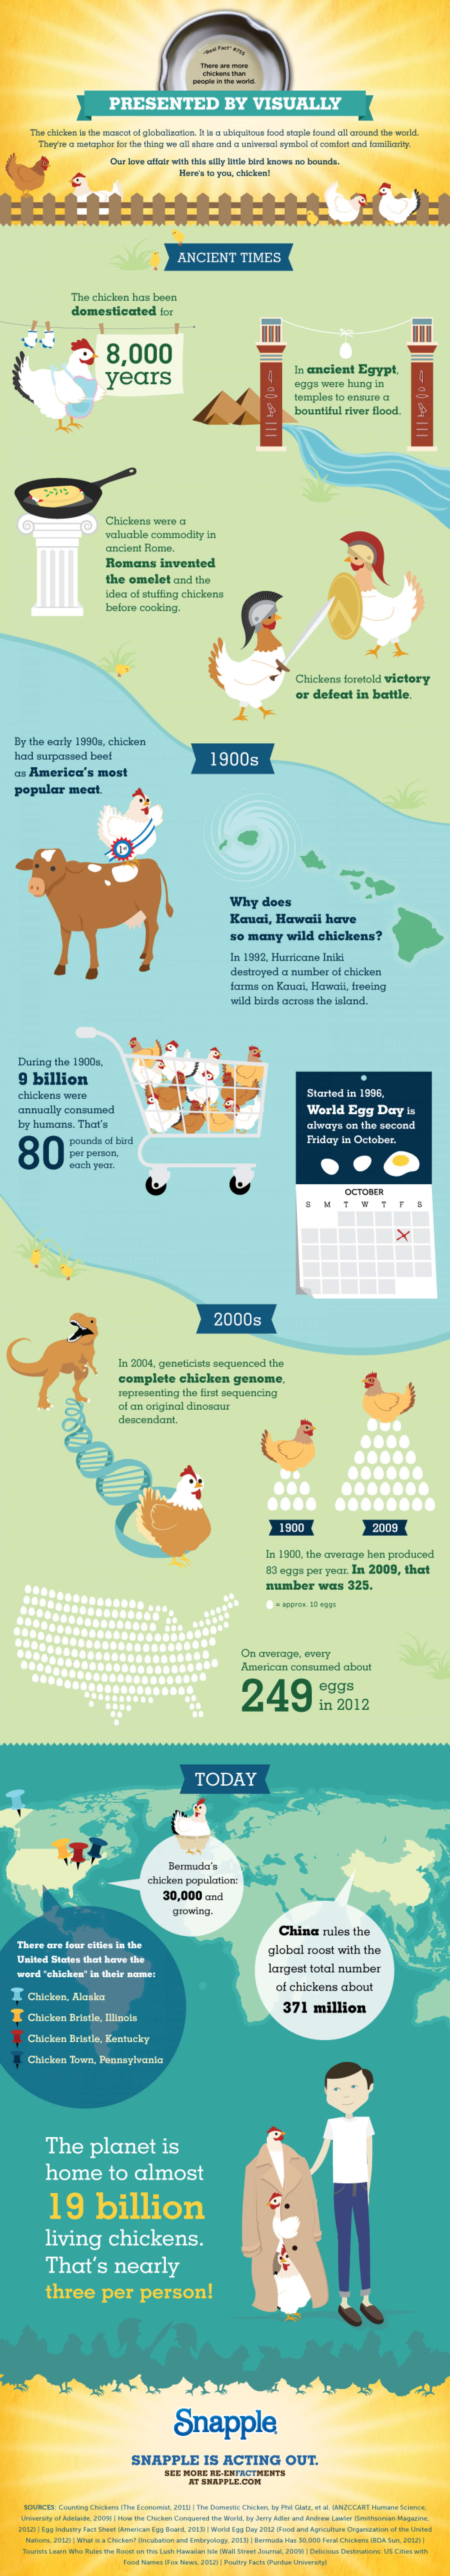 There Are More Chickens Than People in the World Infographic